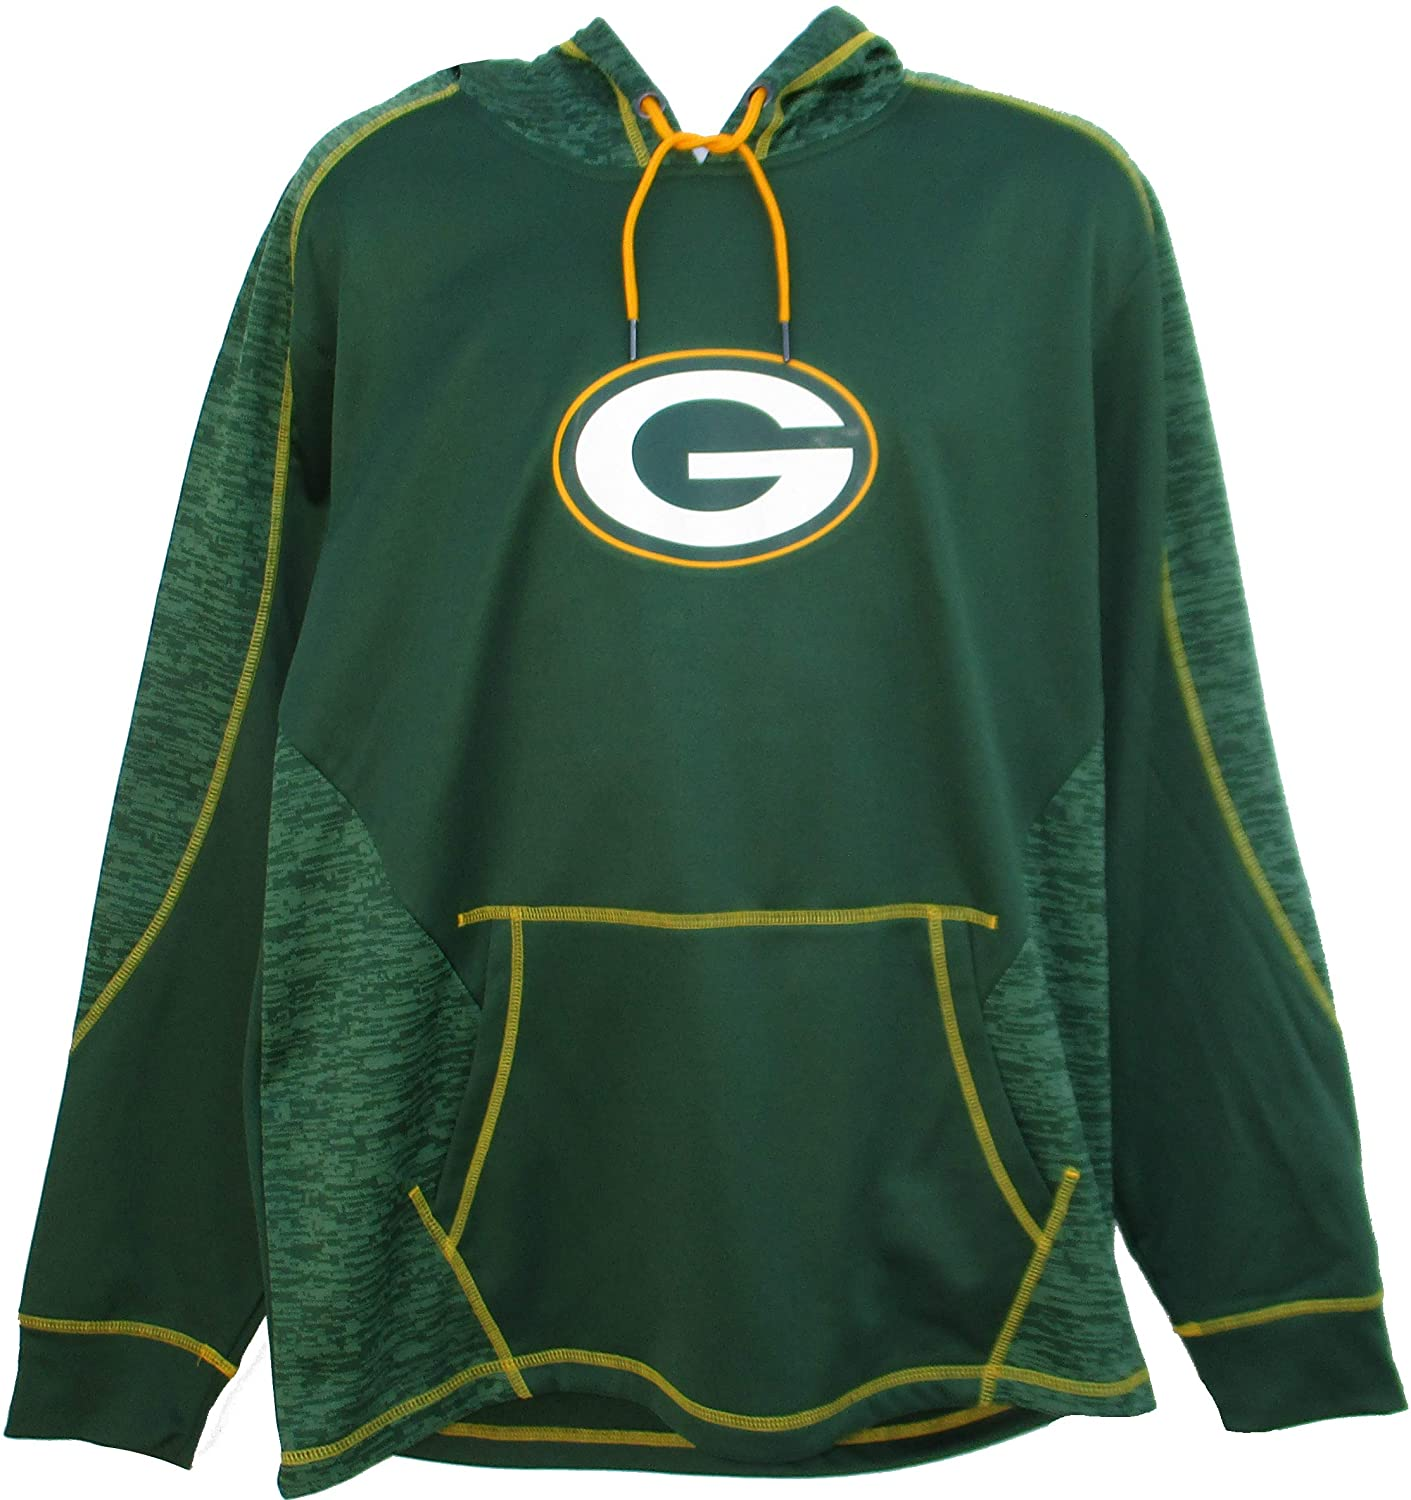 NFL Team Apparel Green Bay Packers Mens Size 2X-Large 2XL Performance Hooded Sweatshirt - Green